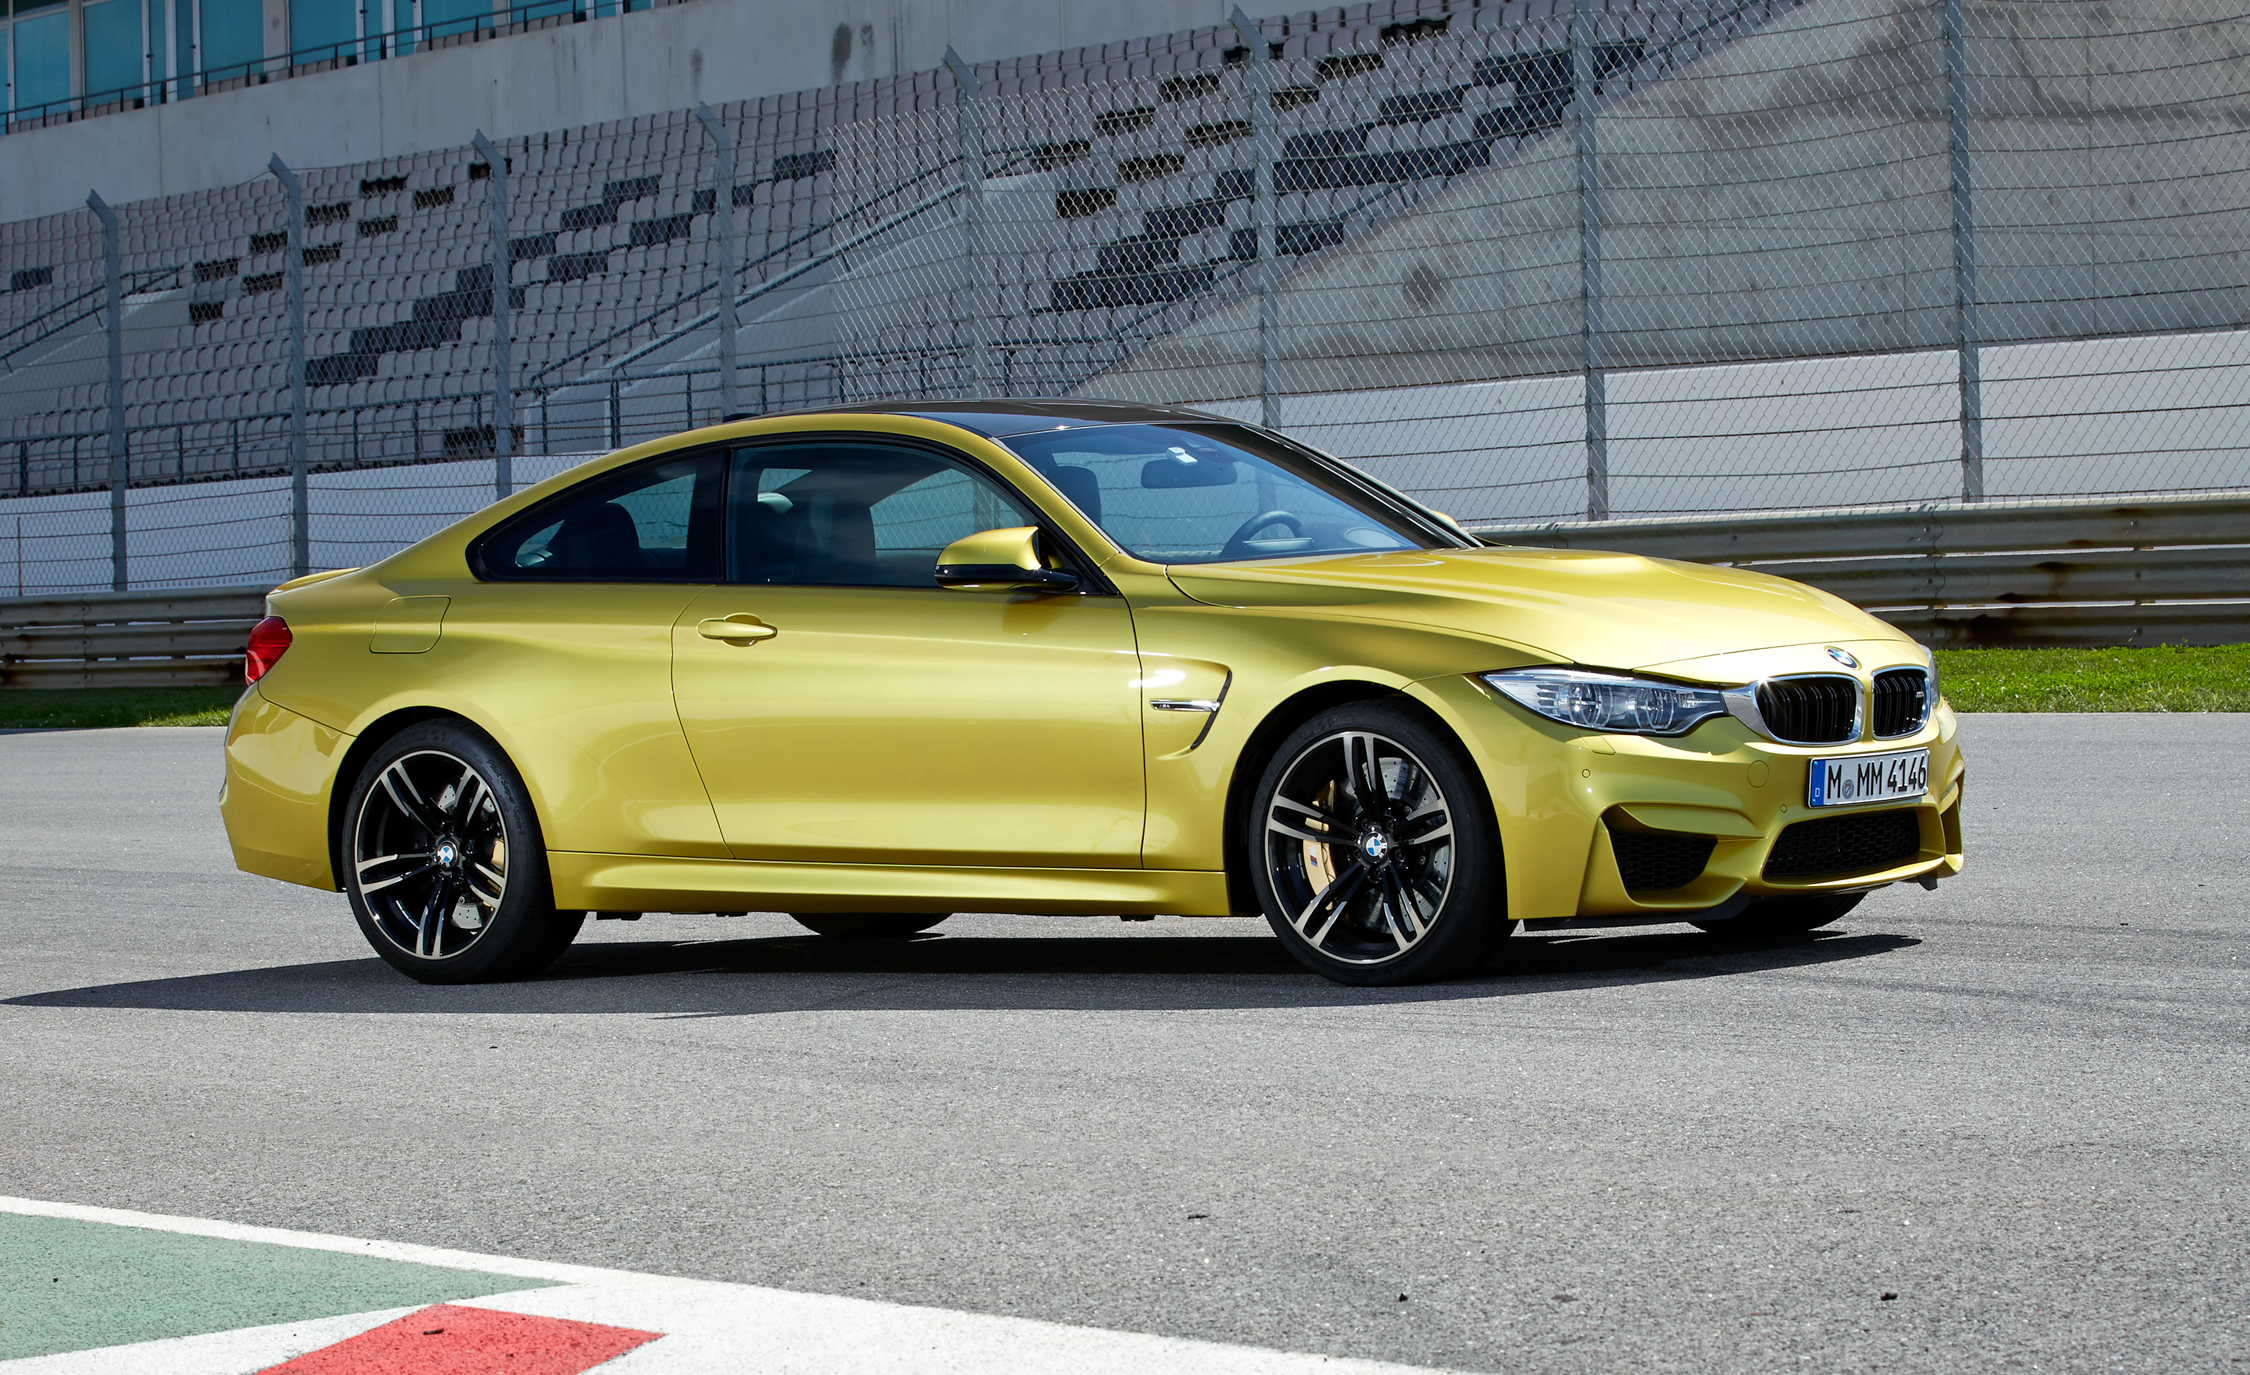 2015 BMW M4 Coupe Exterior Side and Front